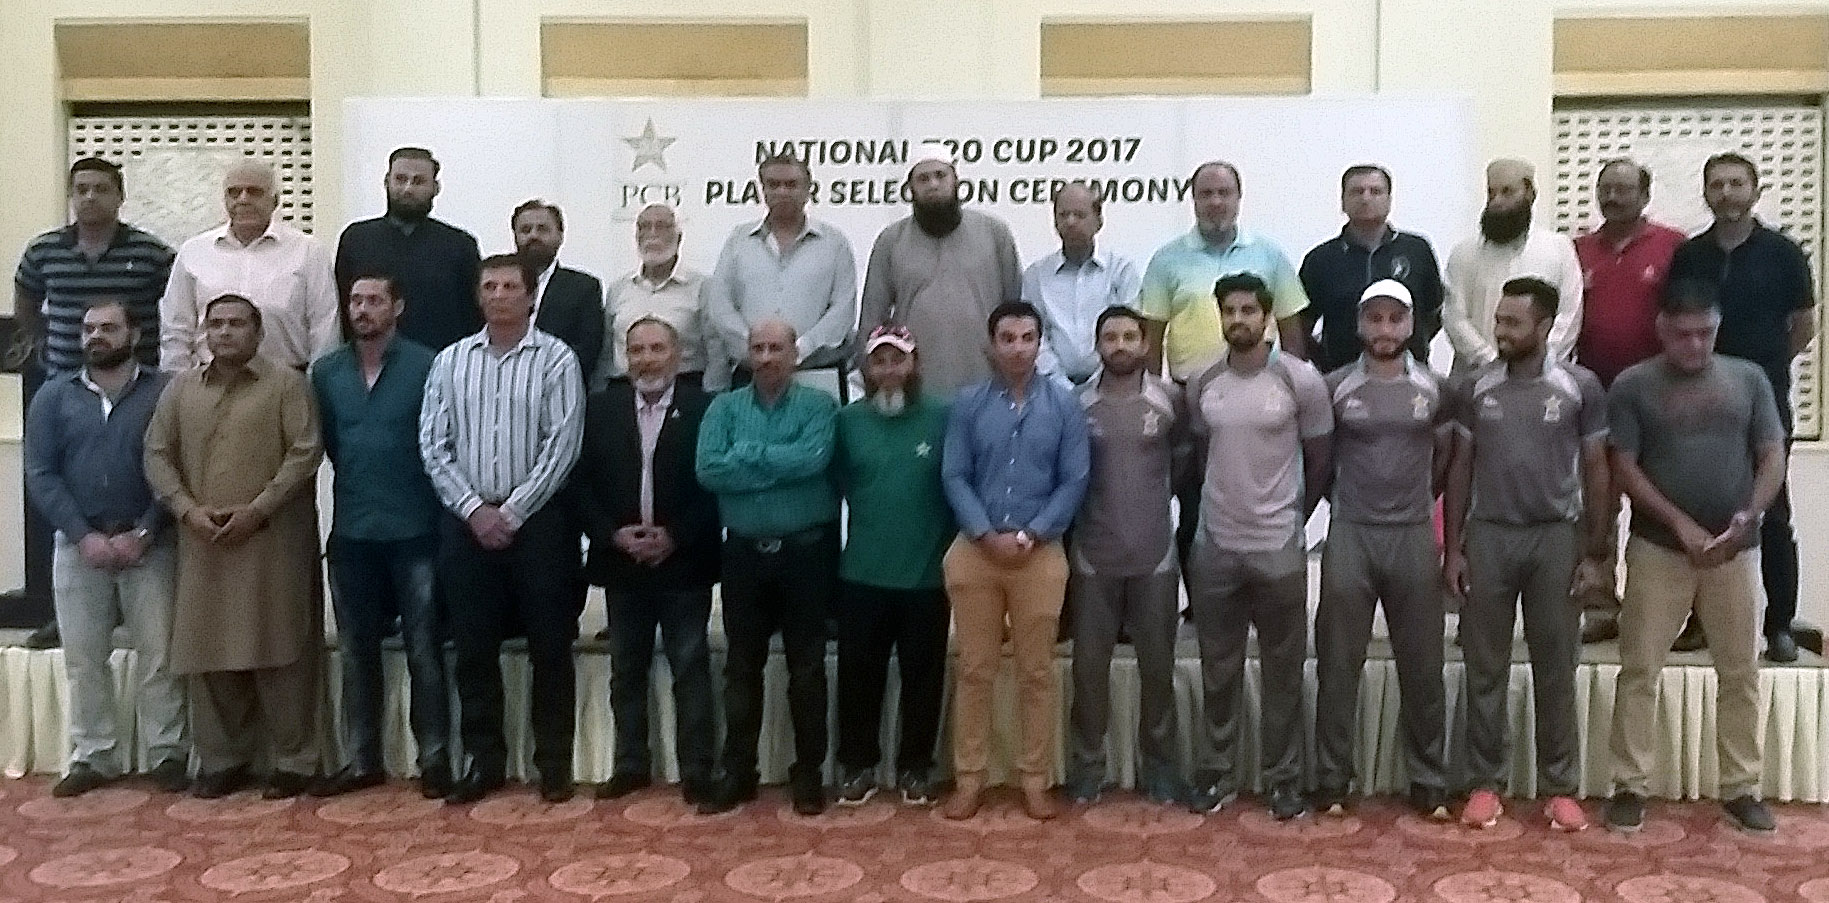 National T20 Cup 2017 squads and schedule announced